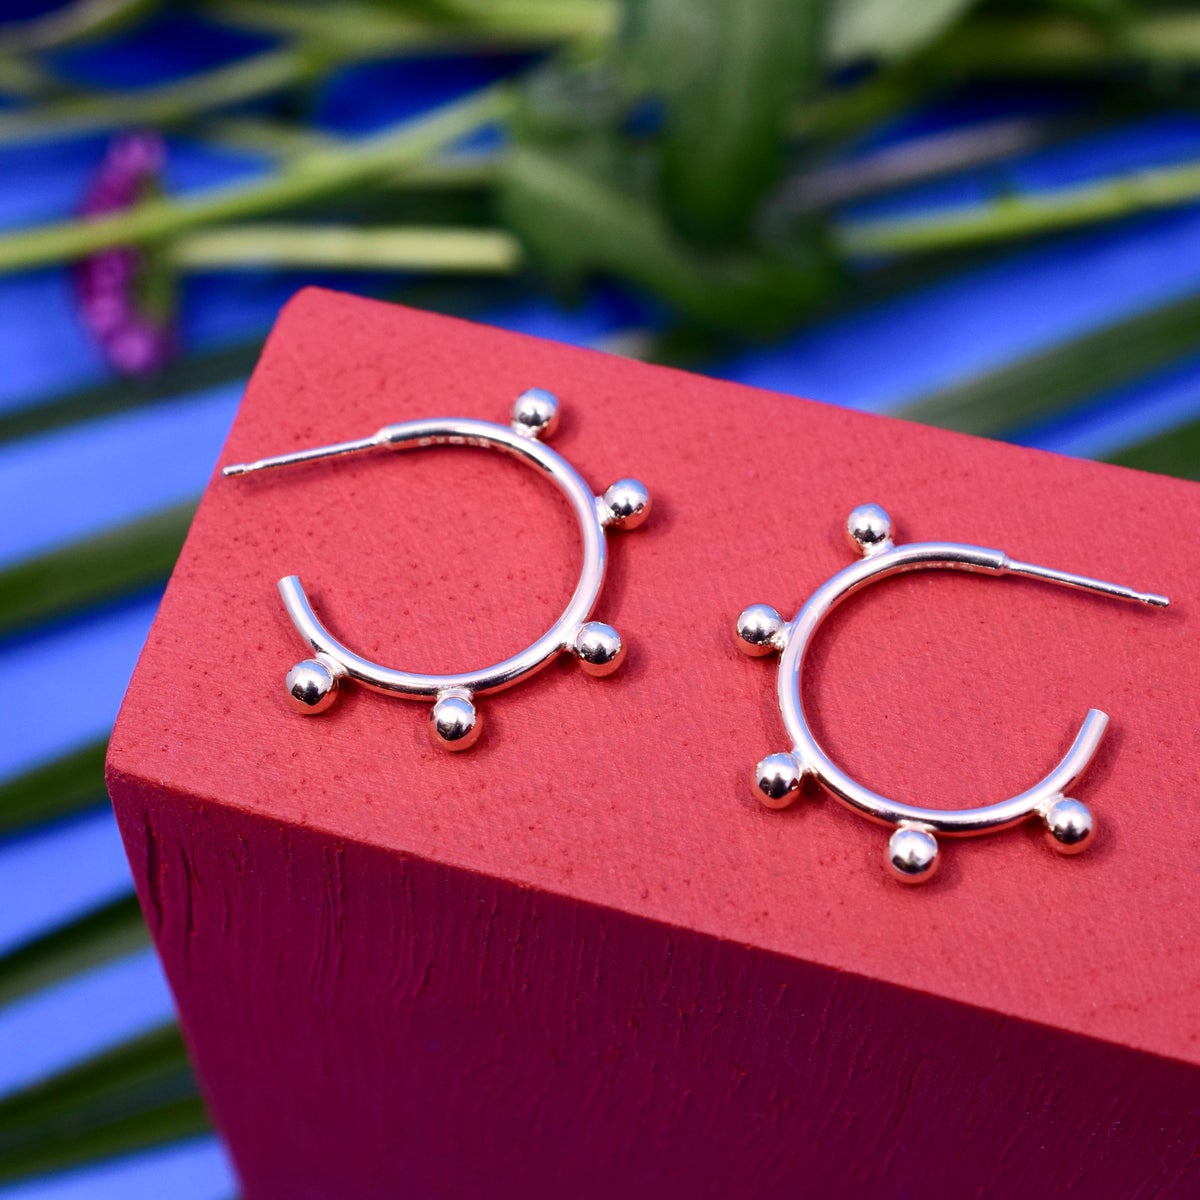 The Frida Hoops in 9ct Gold